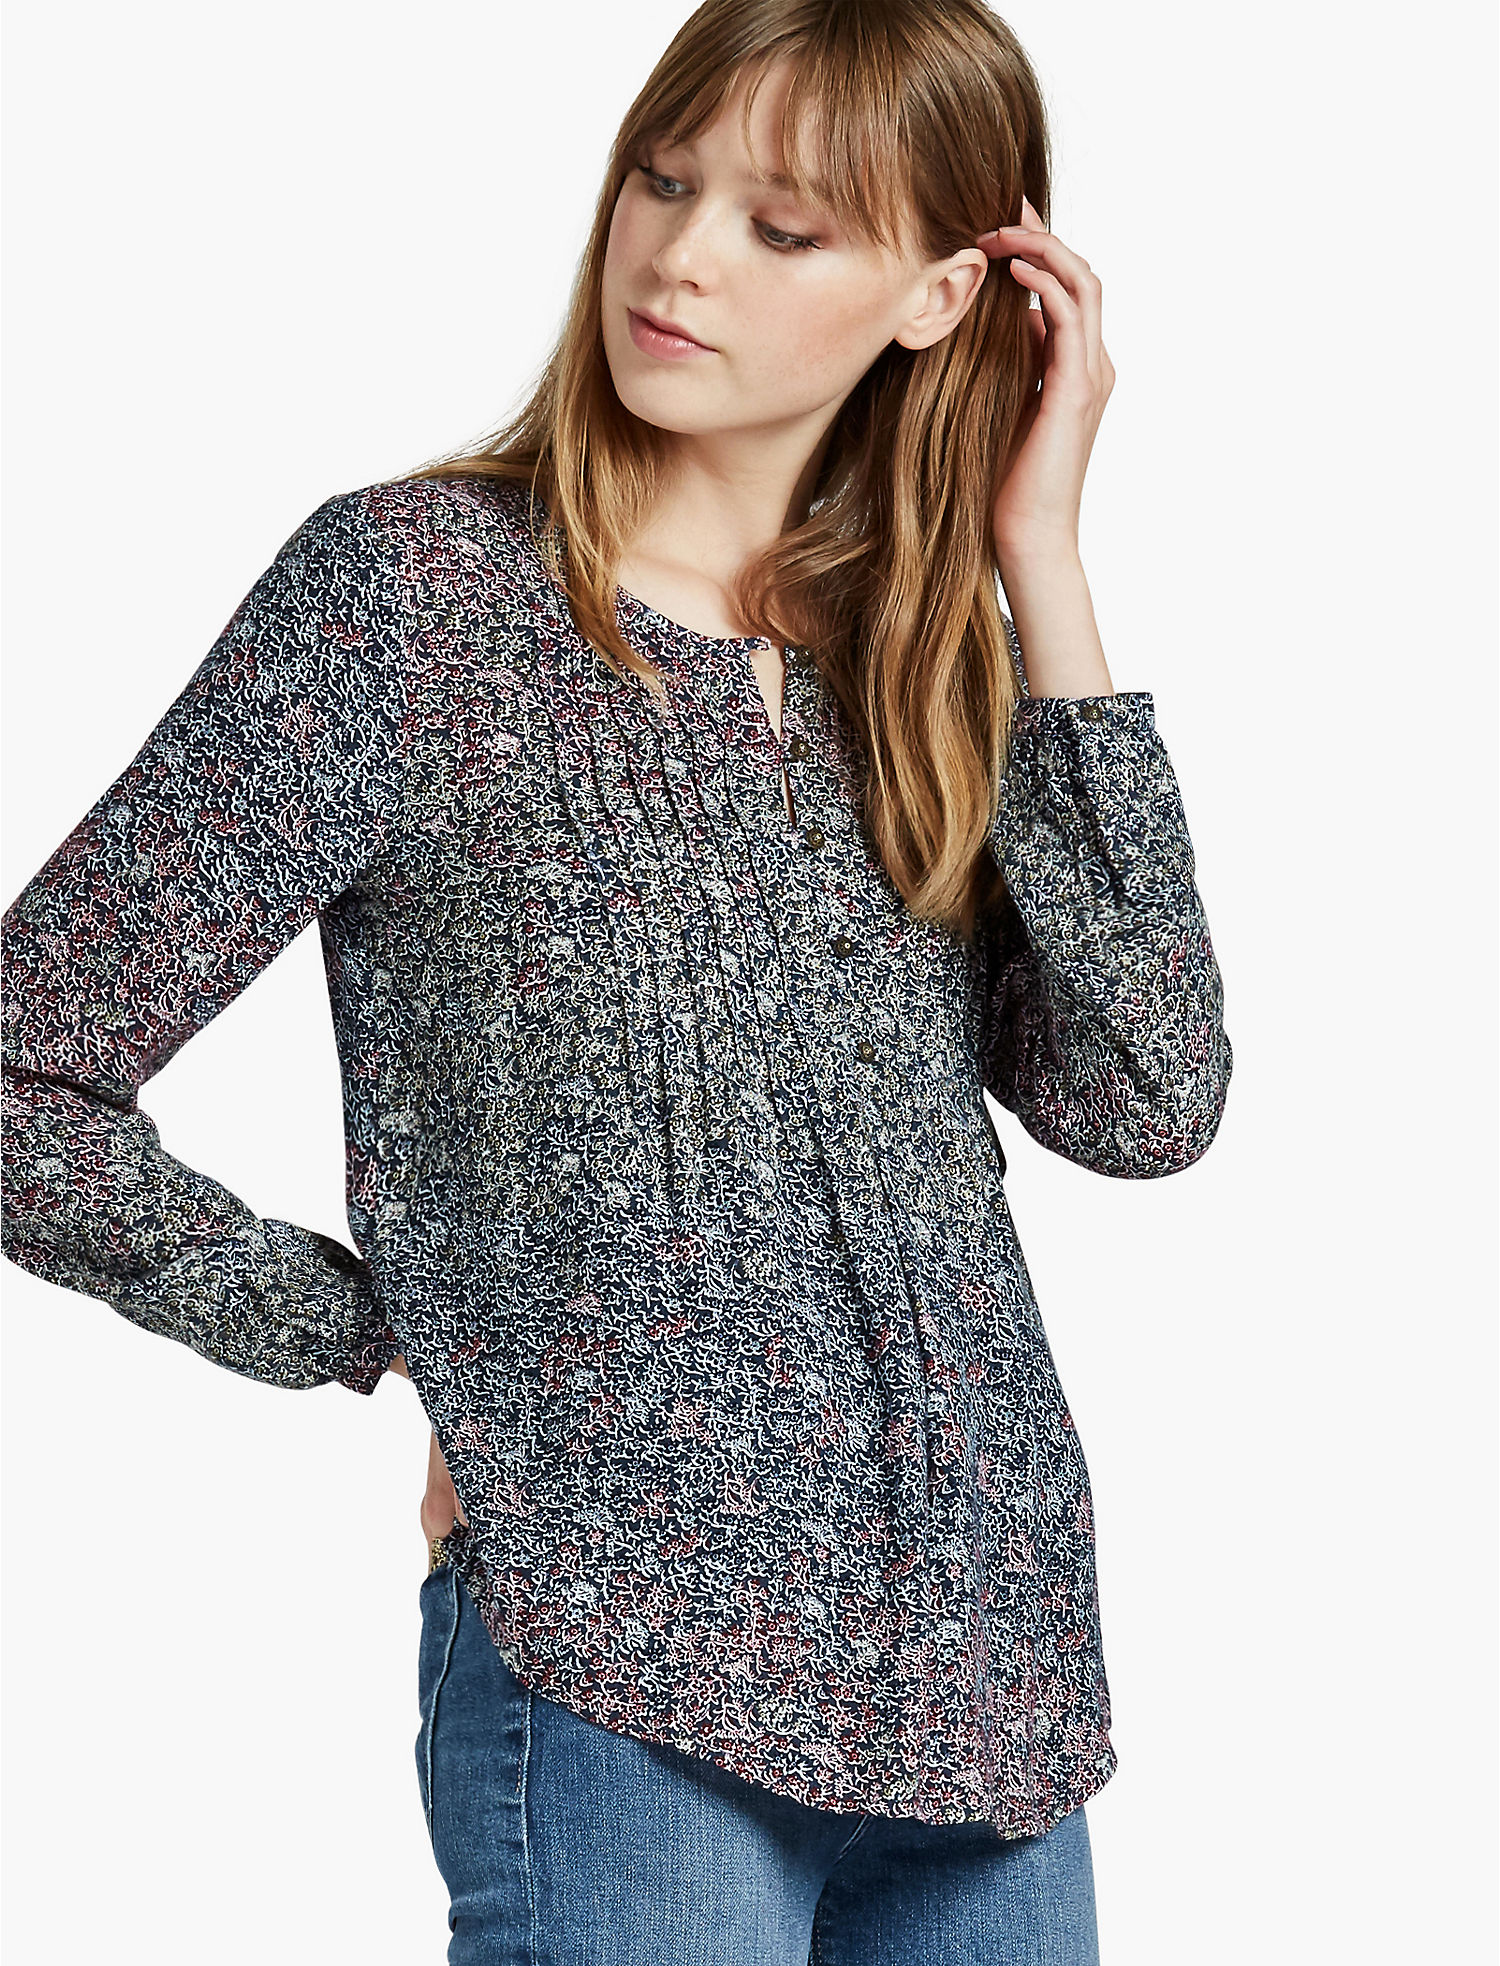 Pintuck Peasant Top Lucky Brand Cheap Pay With Paypal Clearance Low Cost Latest Cheap Price Factory Outlet Sale Online wpC7UlzZTd